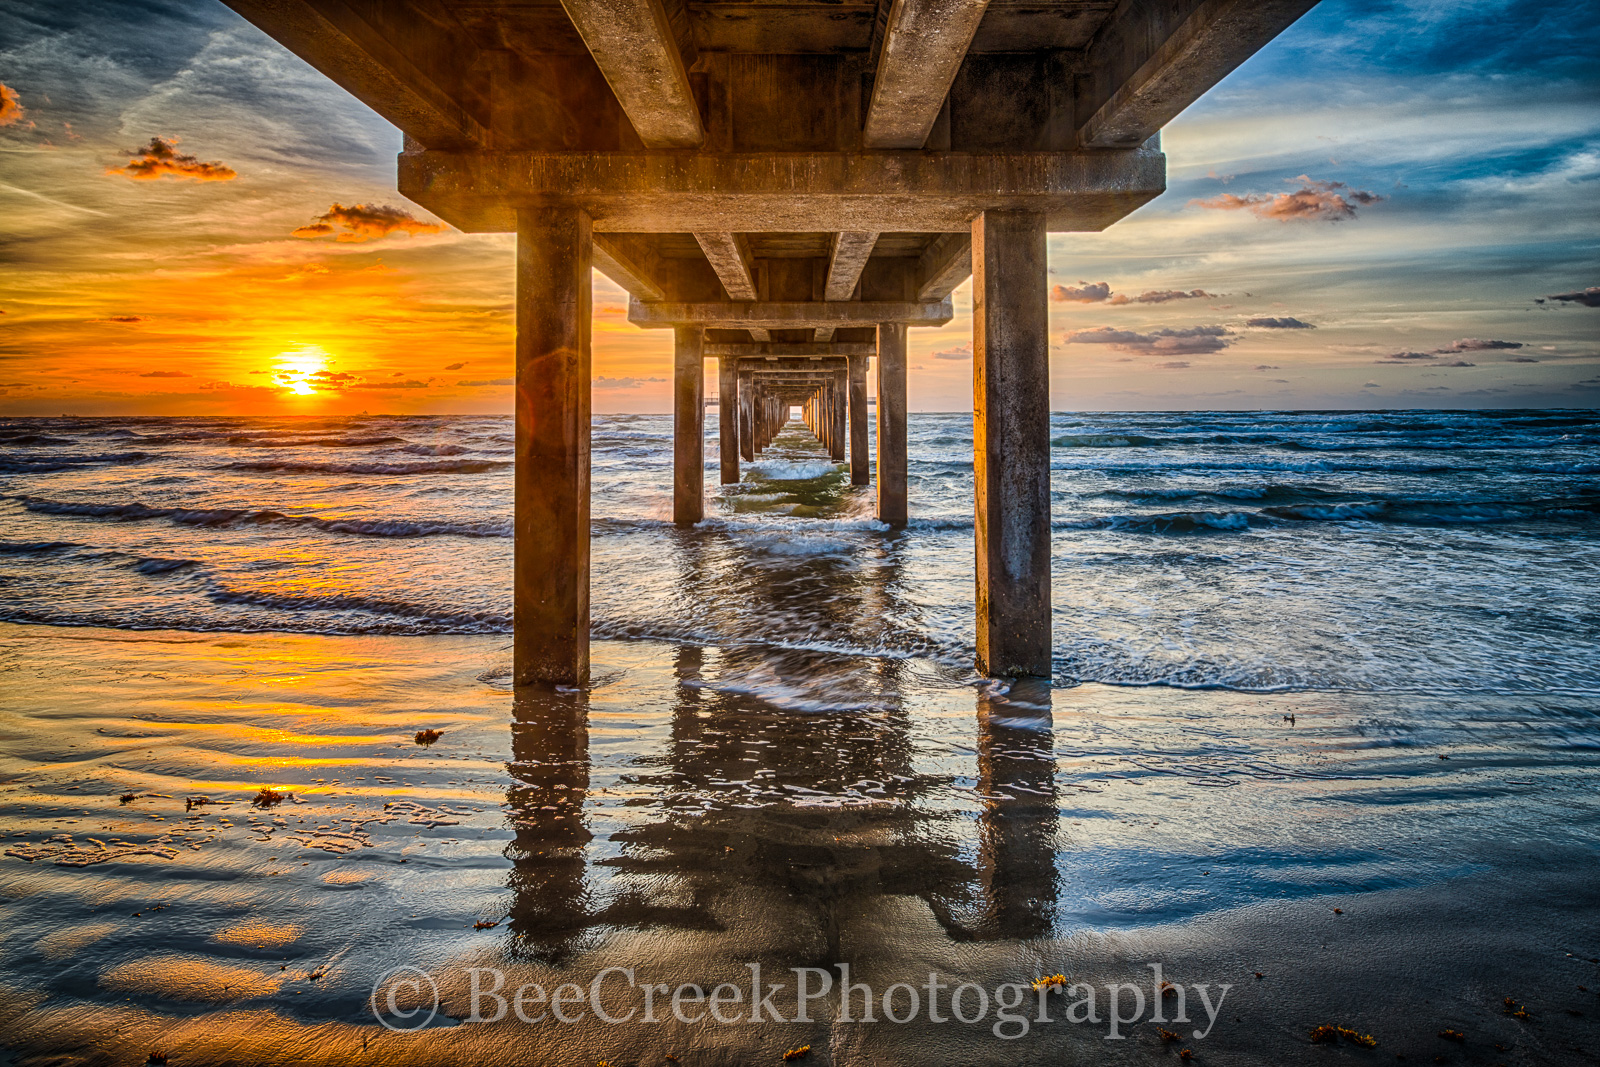 Caldwell pier, Port A, Texas pier, texas piers, Port Aransas, Sunrise, Texas Coast, Texas beach, Texas coastal landscape, beach, beach ocean, coast, coastal, colorful sunrise, fishing pier, gulf of me